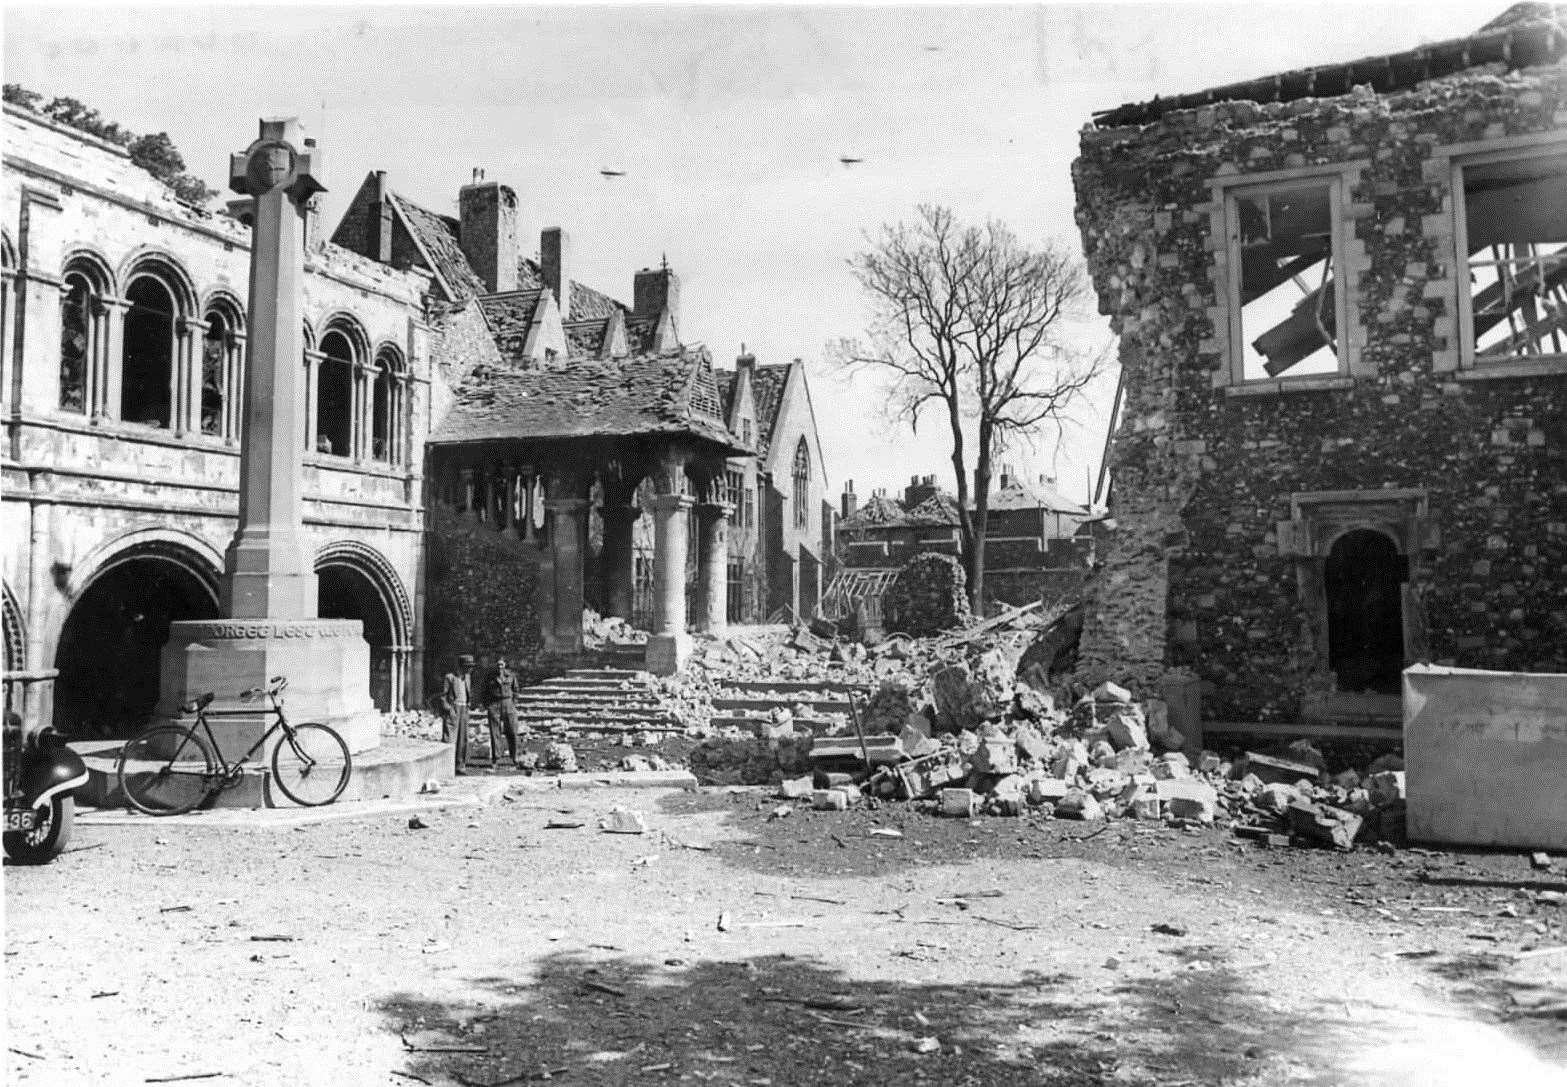 King's School in Canterbury was damaged in German air raids but the Norman staircase, although battered, survived